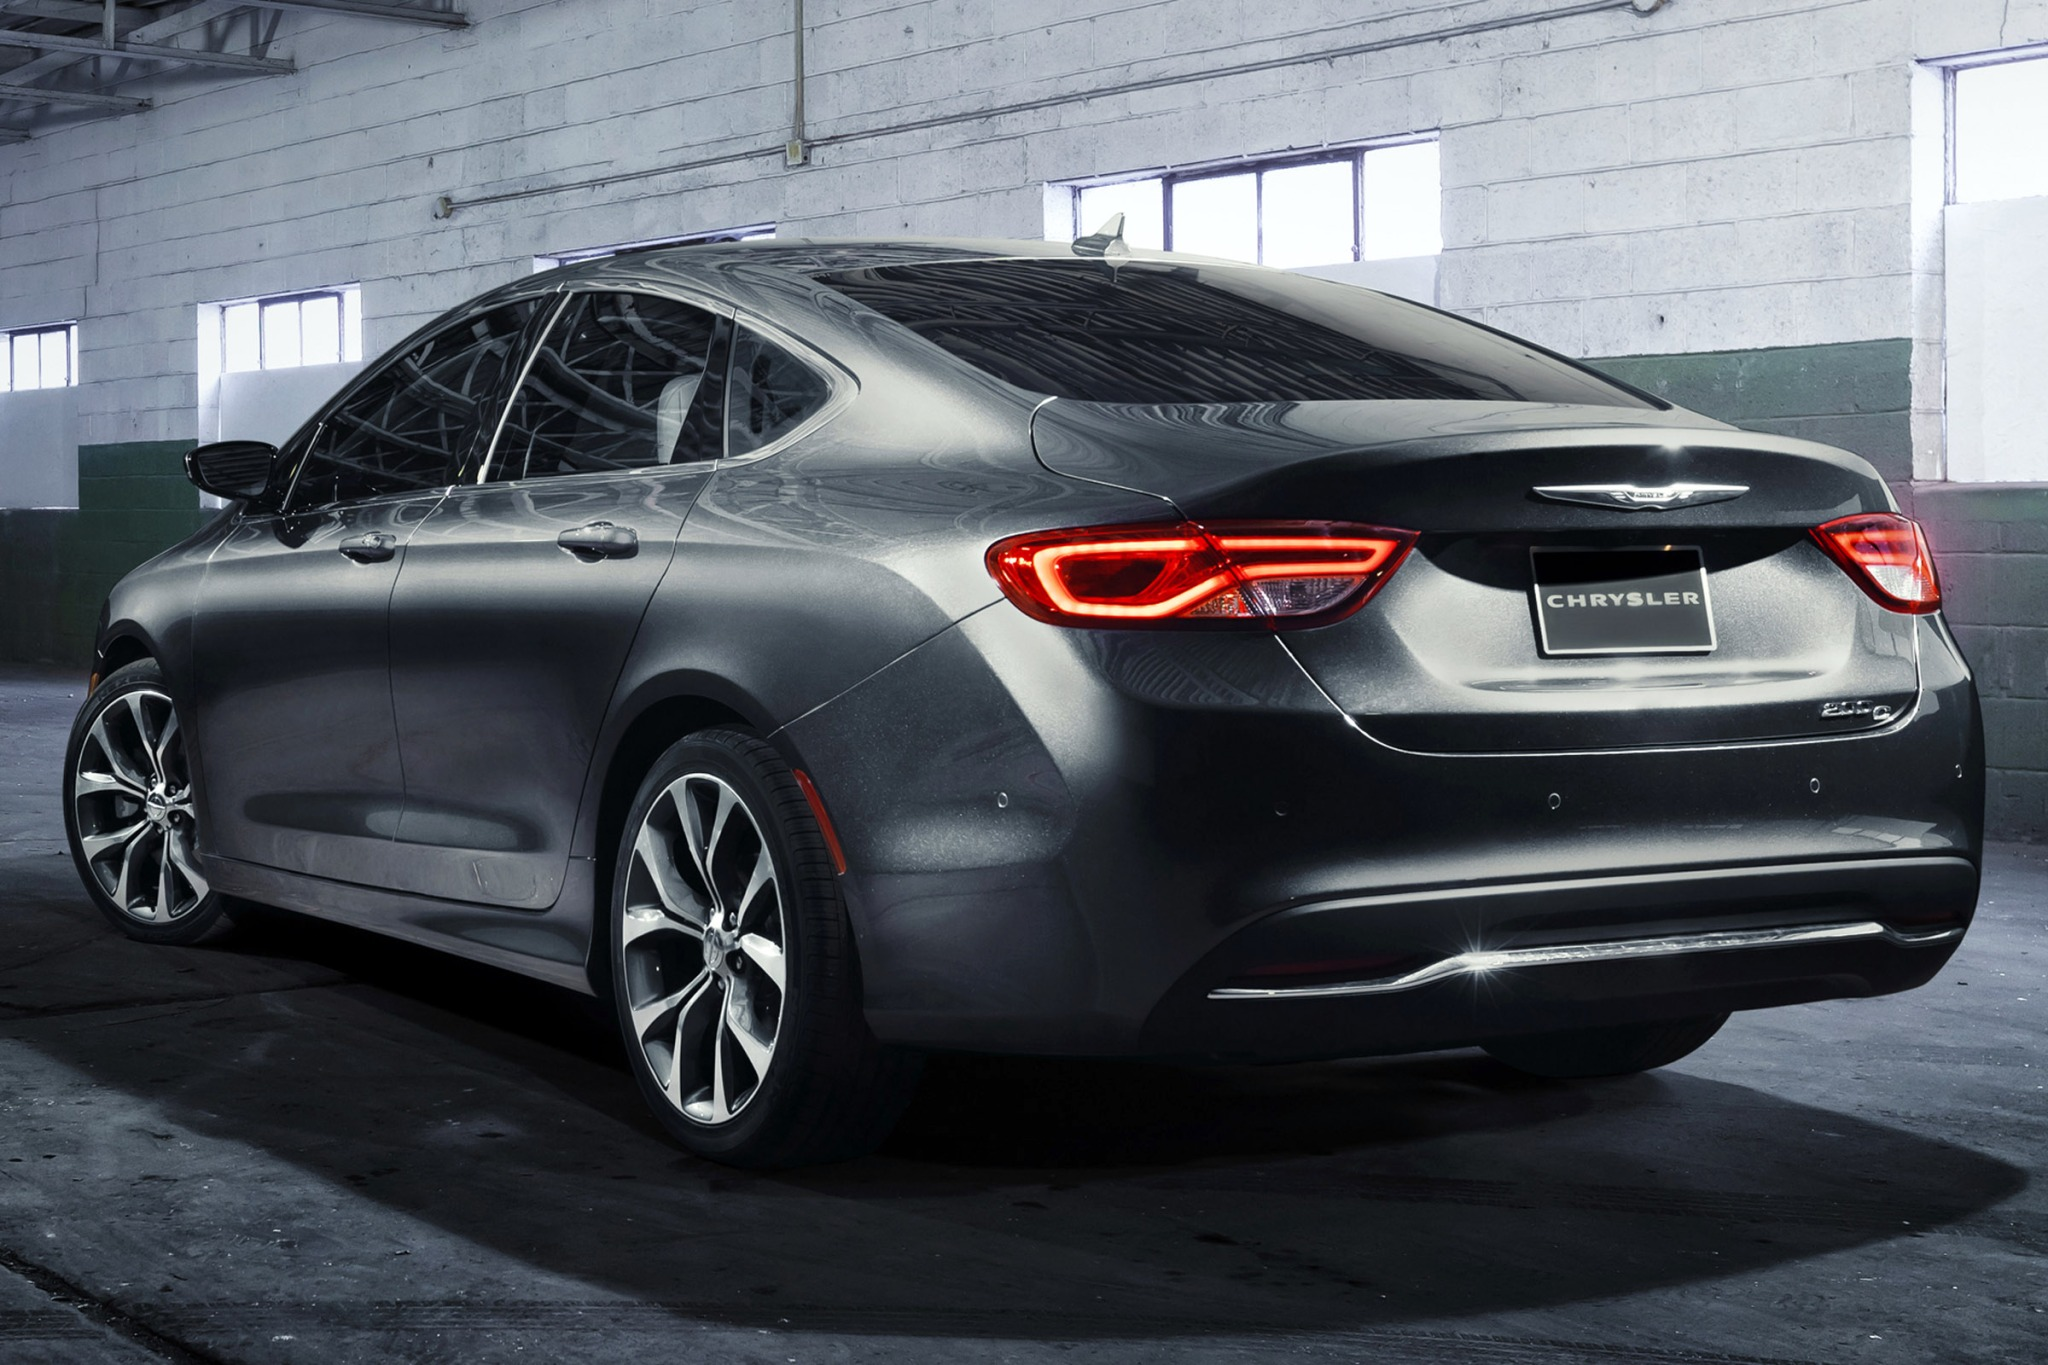 2015 Chrysler 200 C Sedan exterior #8